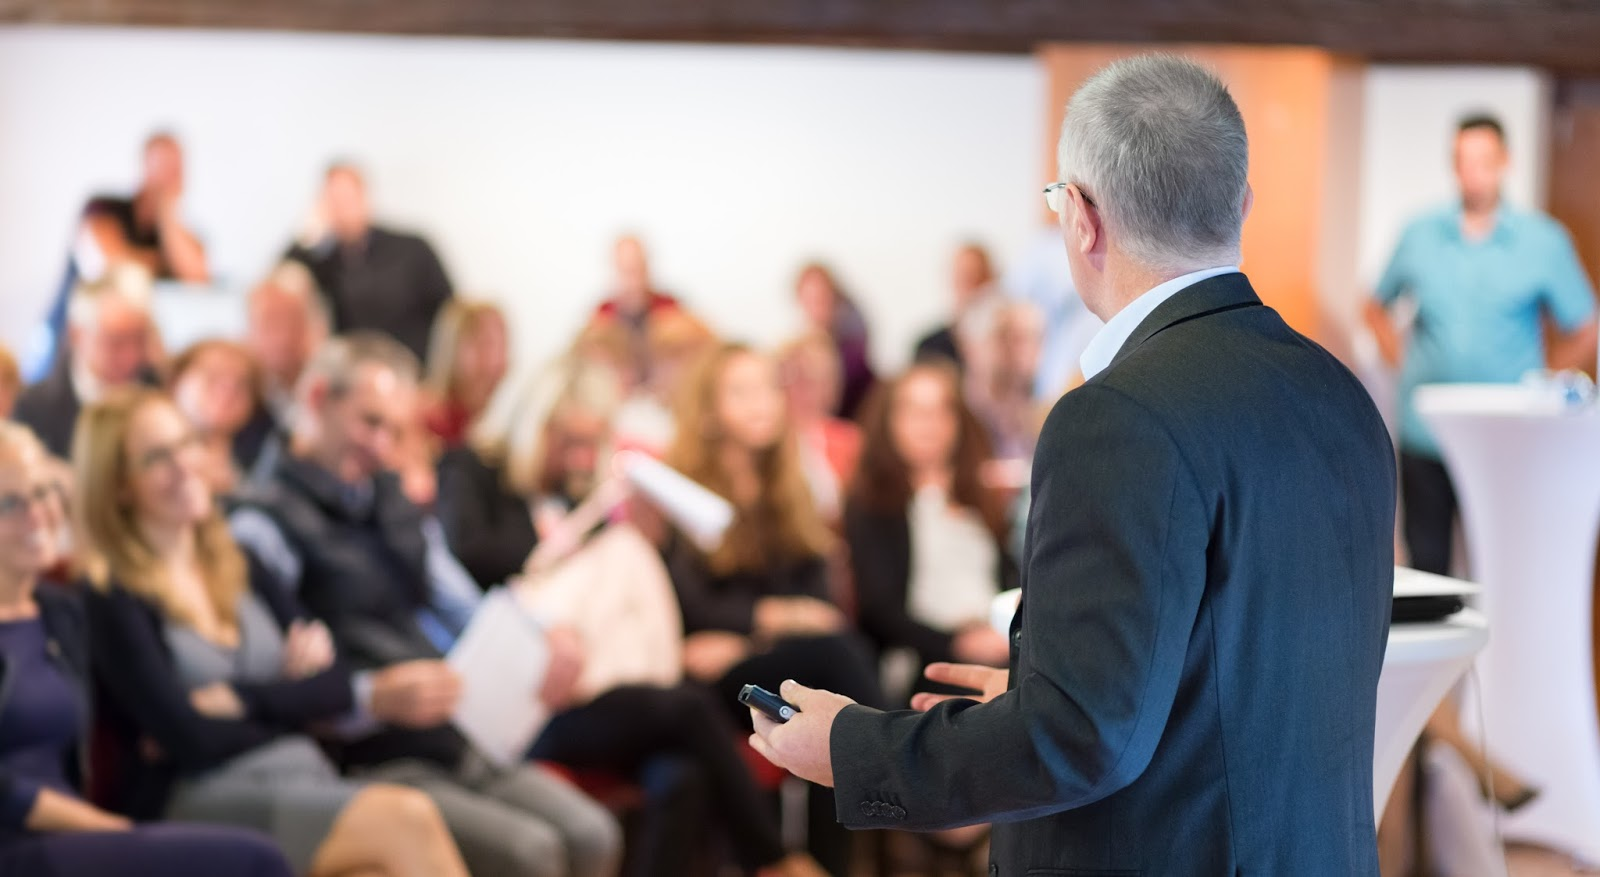 Public Speaking Tip: Connect With Your Audience